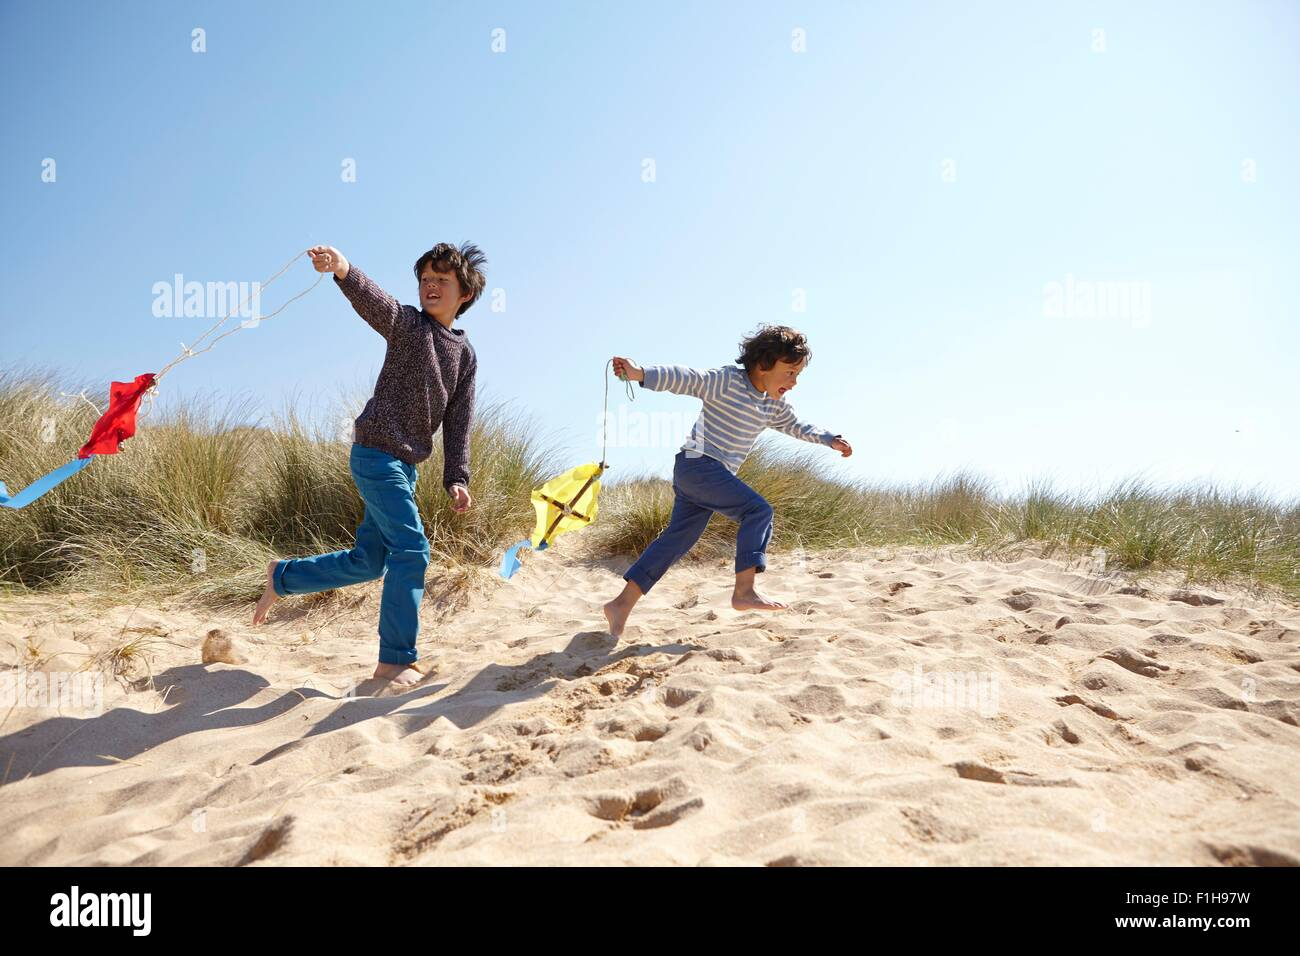 Two young boys, flying kites on beach - Stock Image